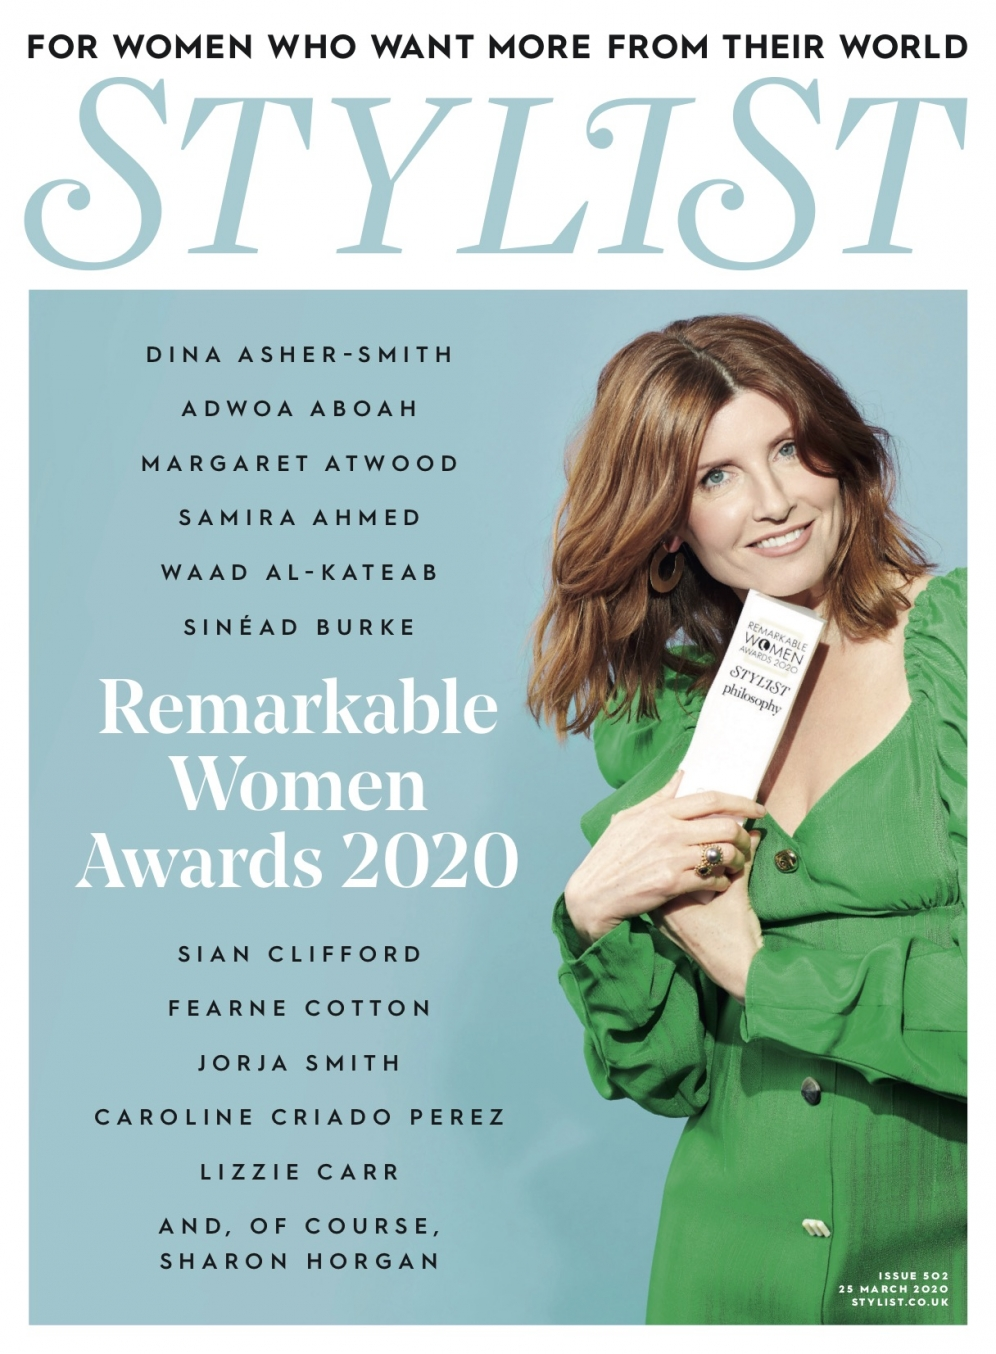 Sharon Horgan x Stylist | Woman of the Year award